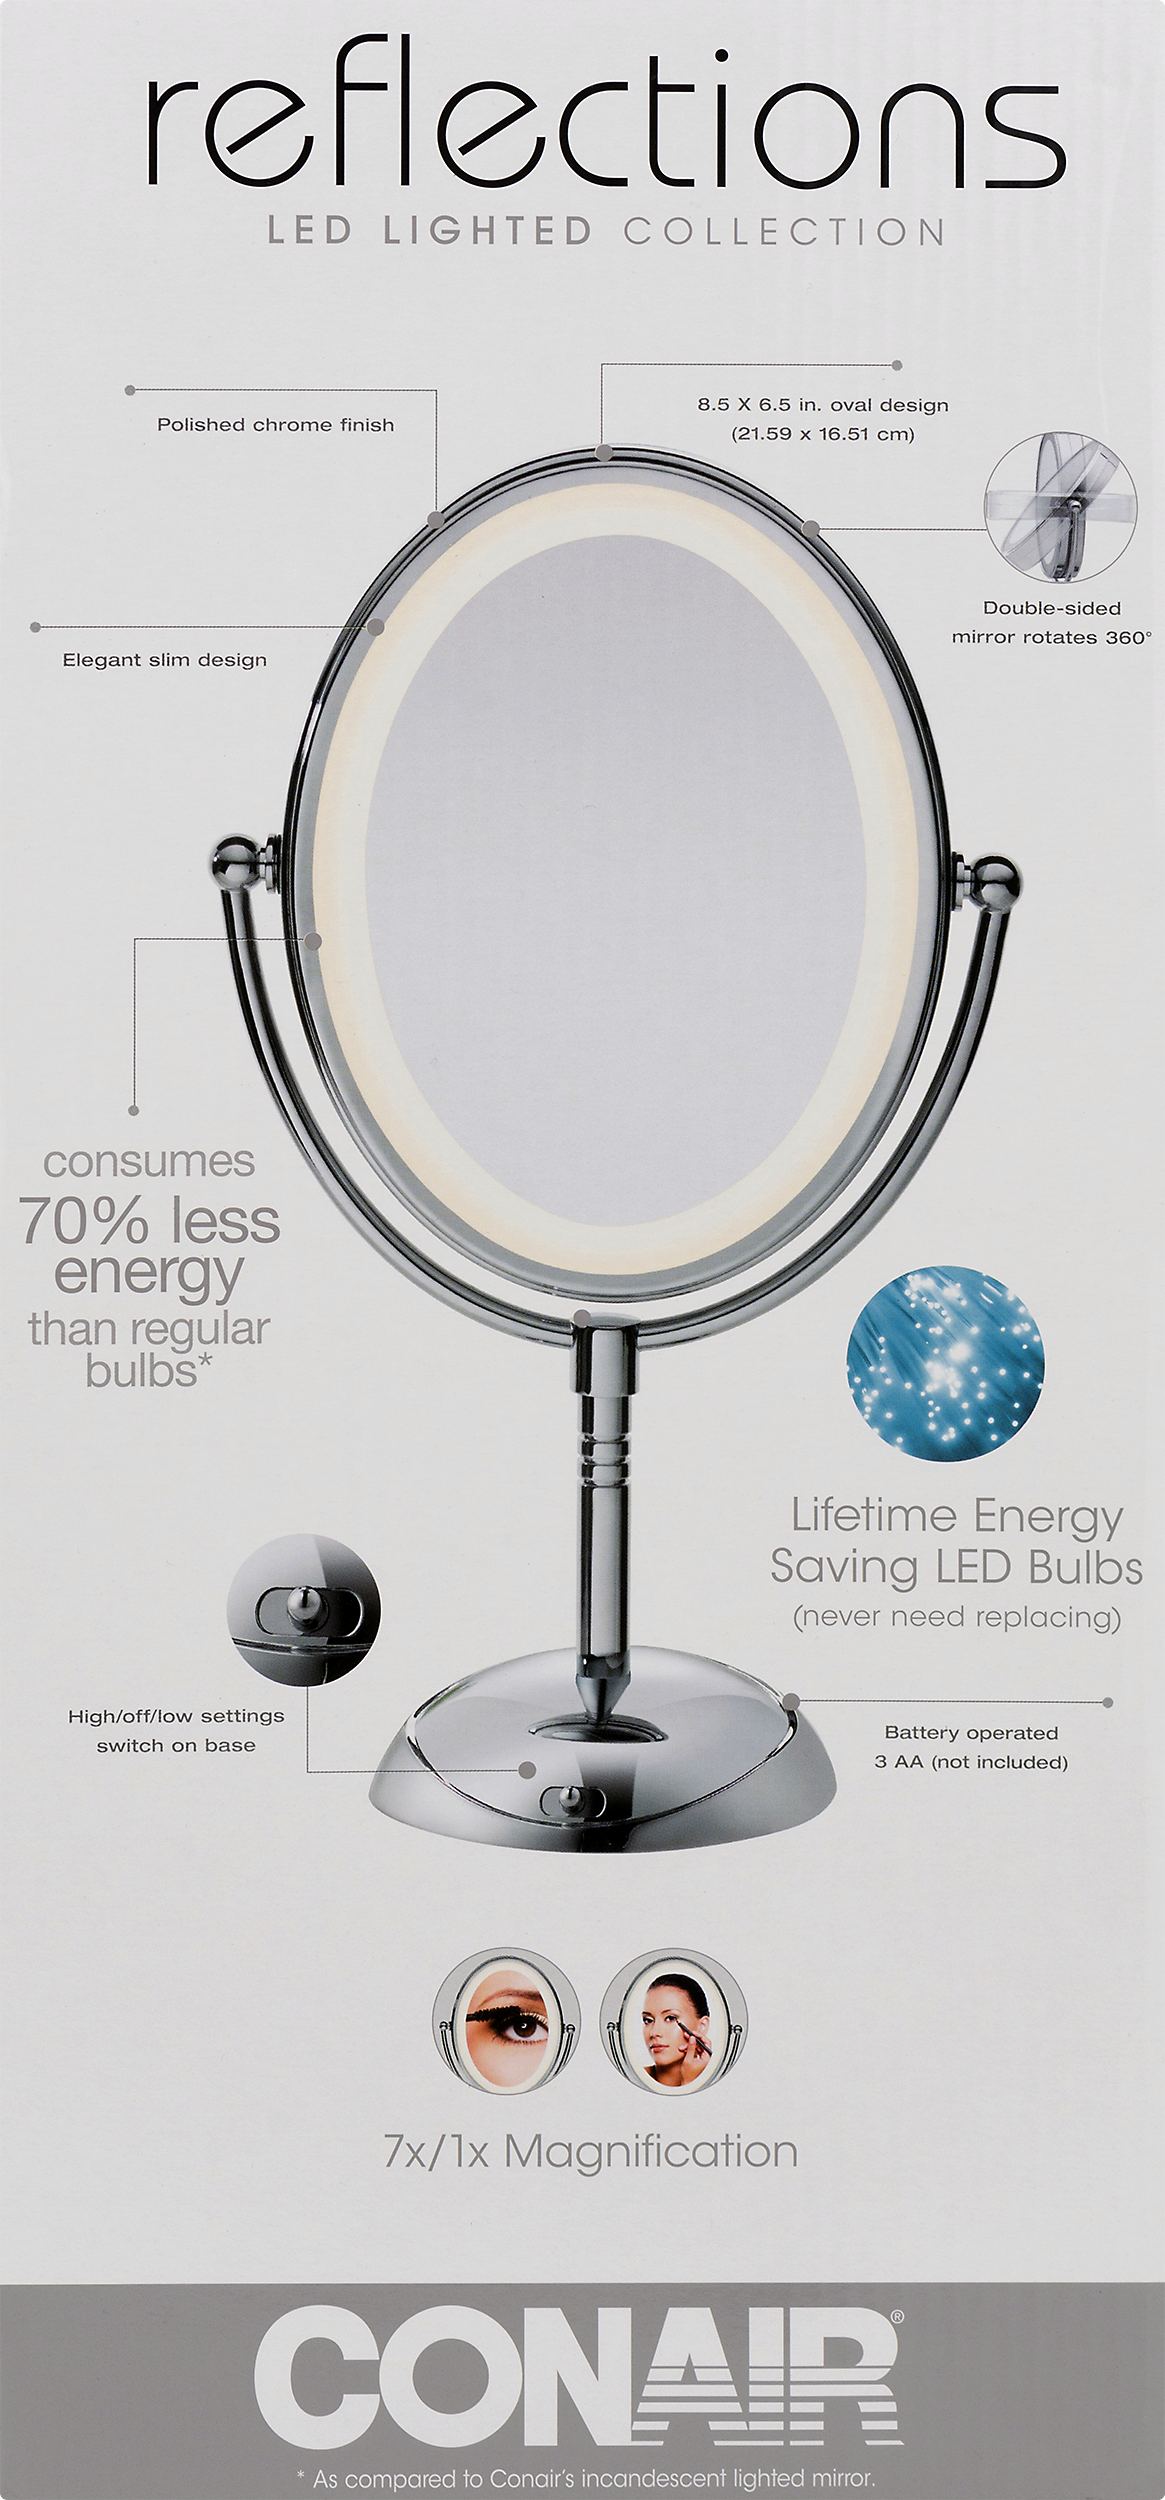 Conair reflections led lighted collection polish chrome finish 10 conair reflections led lighted collection polish chrome finish 10 ct walmart mozeypictures Image collections